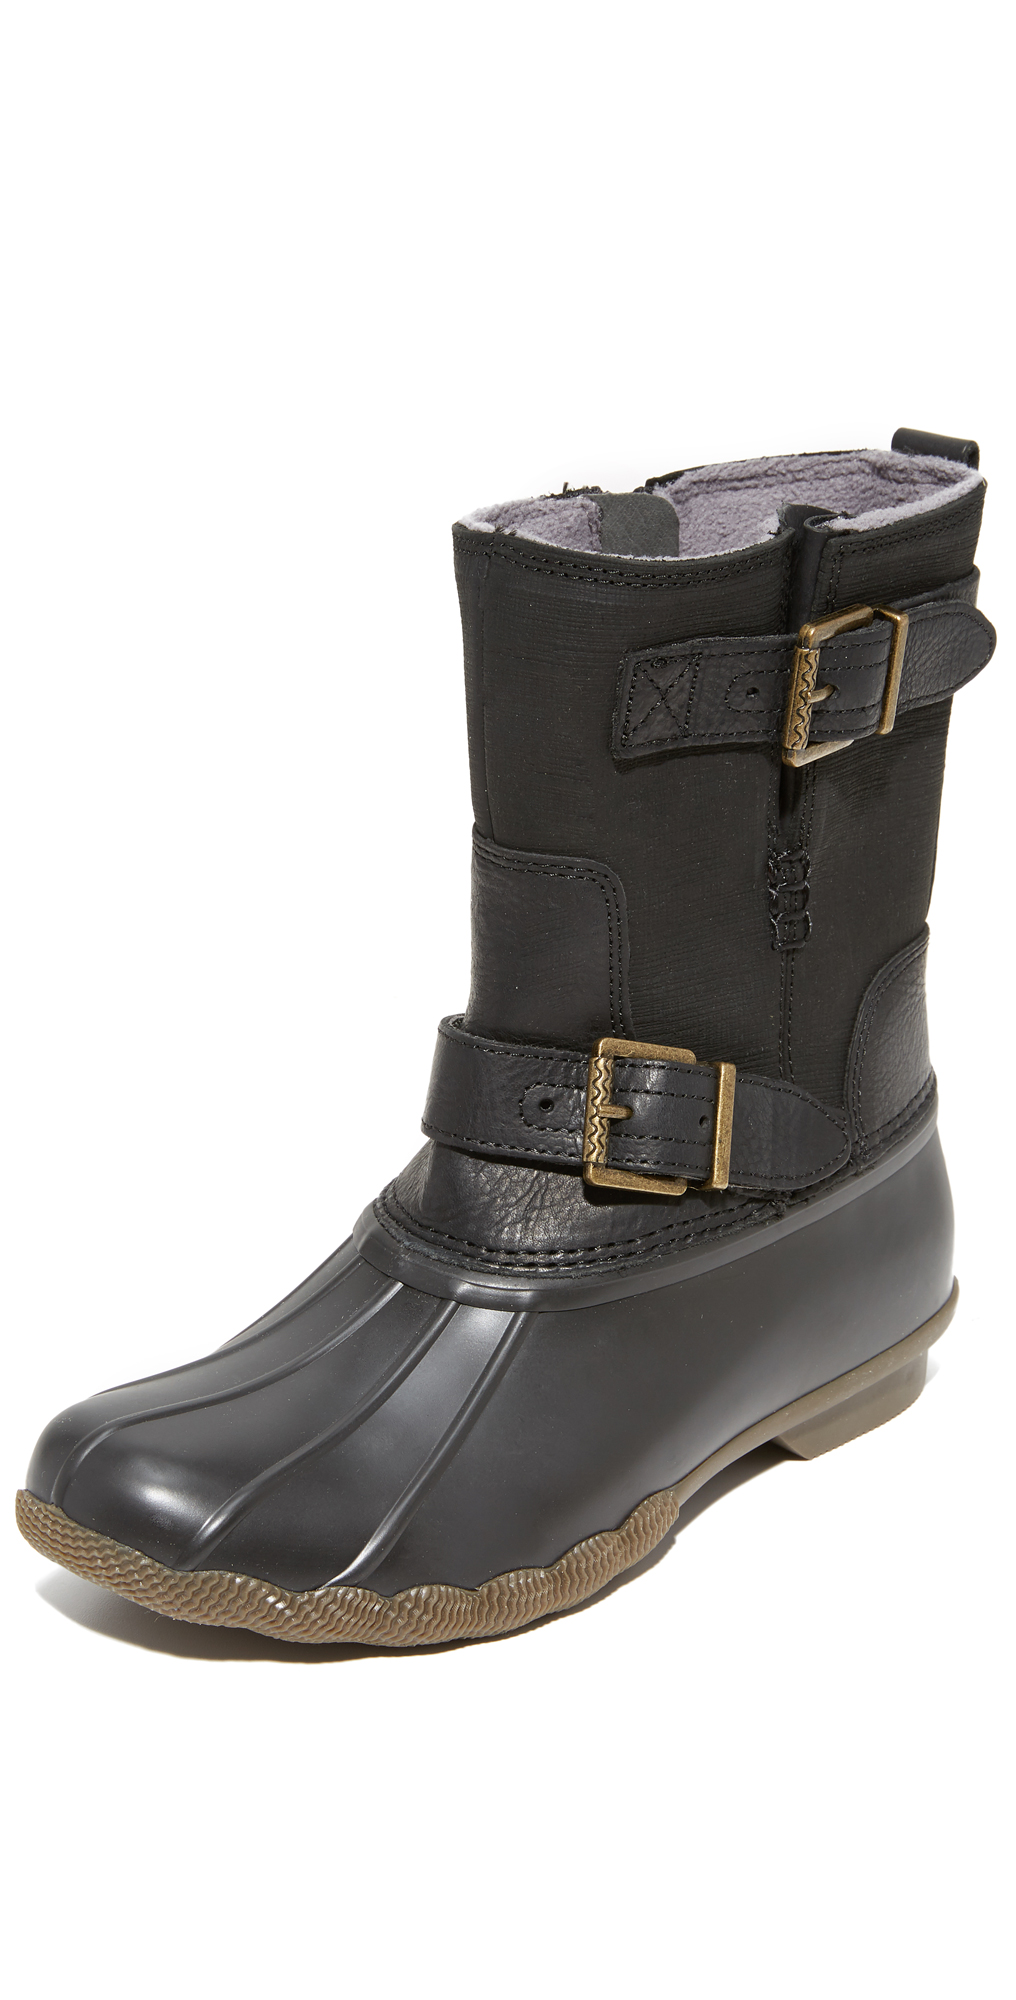 Saltwater Acadia Boots Sperry